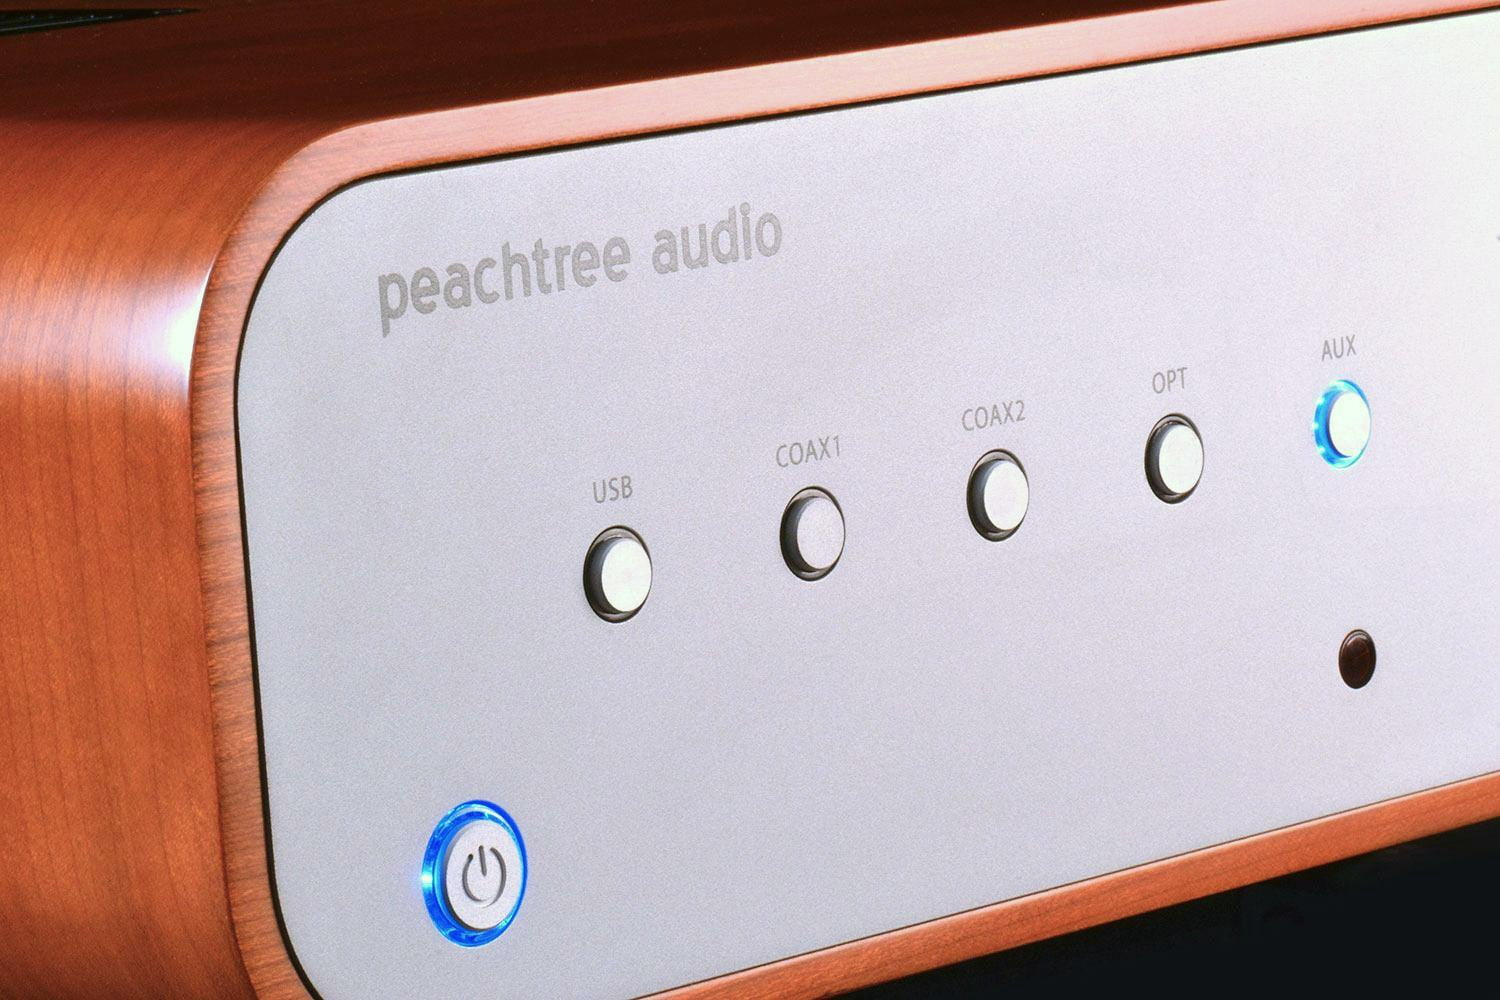 Peachtree audio decco65 review digital trends for Peachree